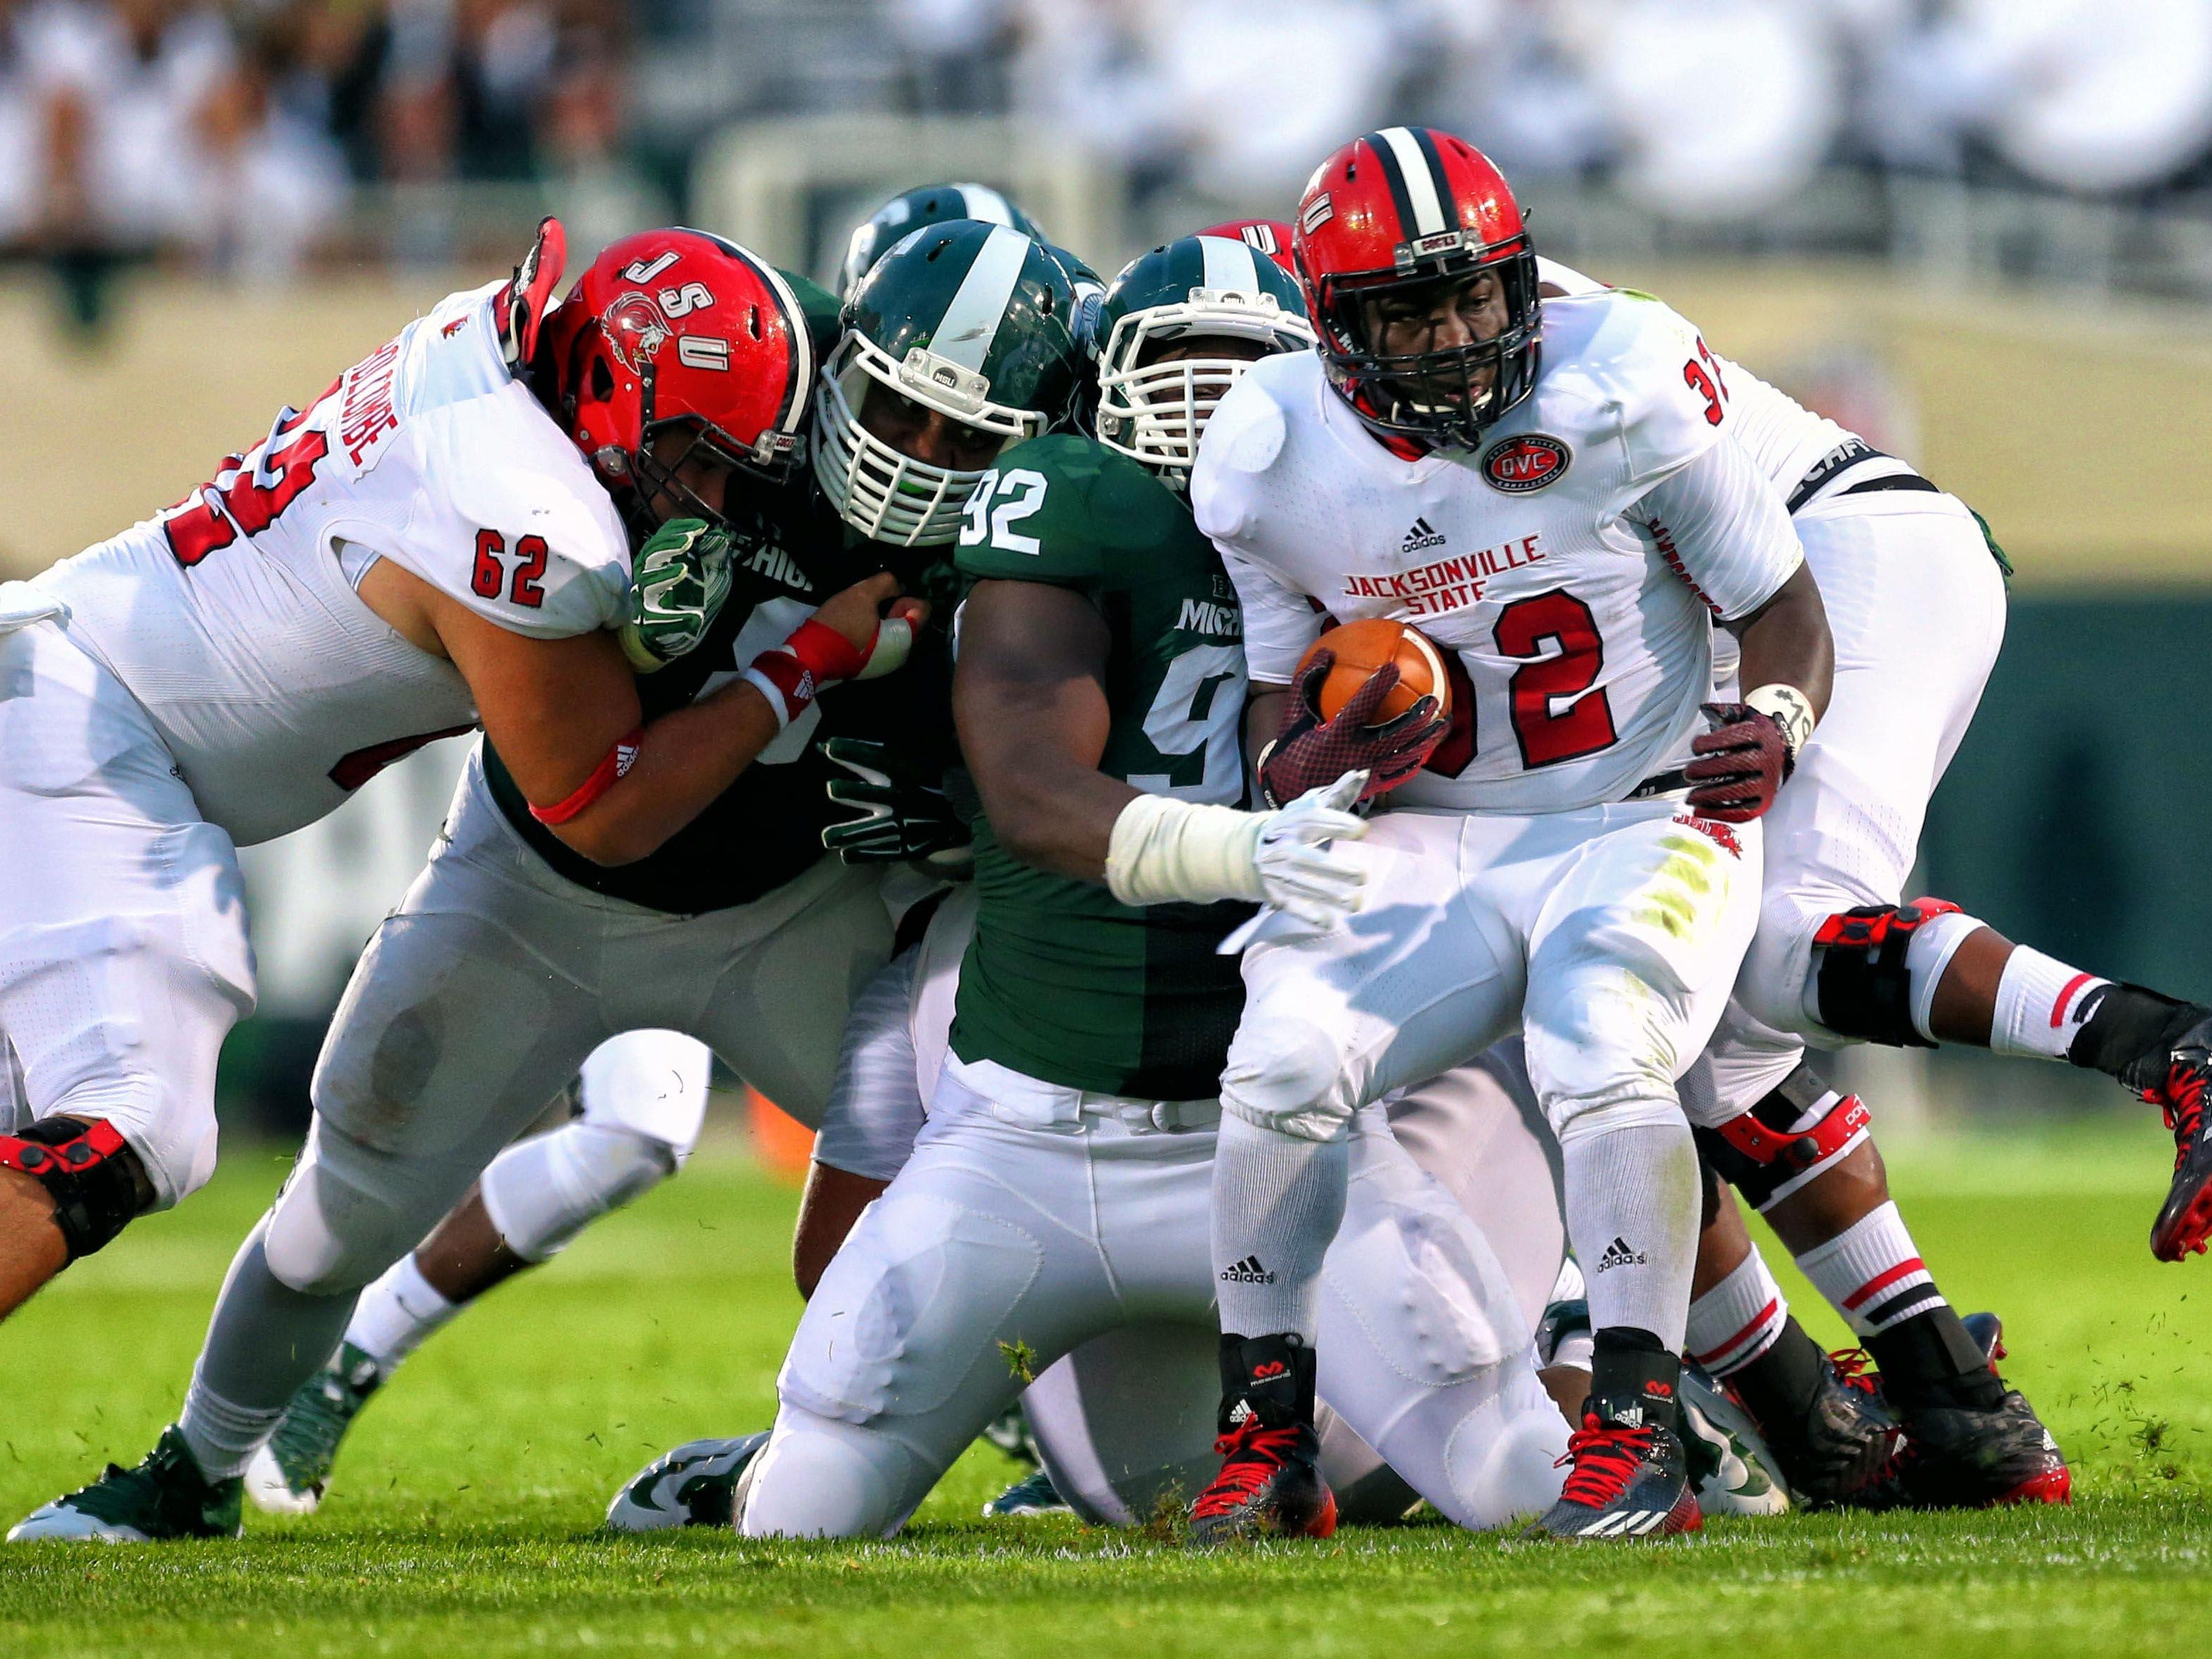 Jacksonville State running back DaMarcus James and the Gamecocks will play at Auburn on Sept. 12.